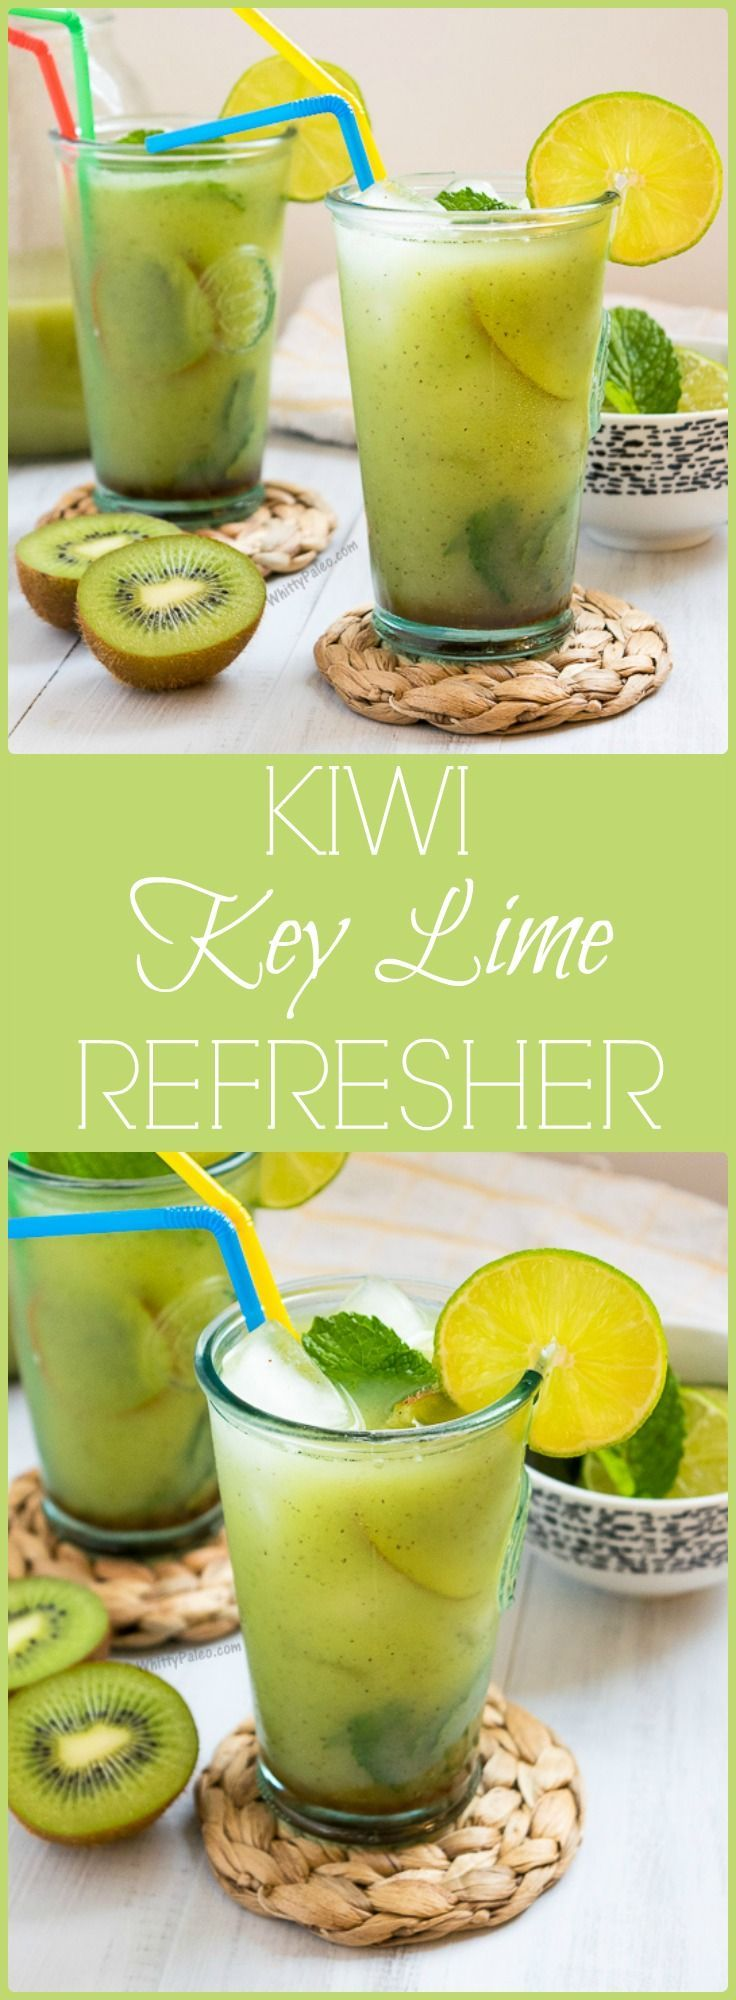 Healthy Cool Kiwi Key Lime Cucumber Refresher from WhittyPaleo.com